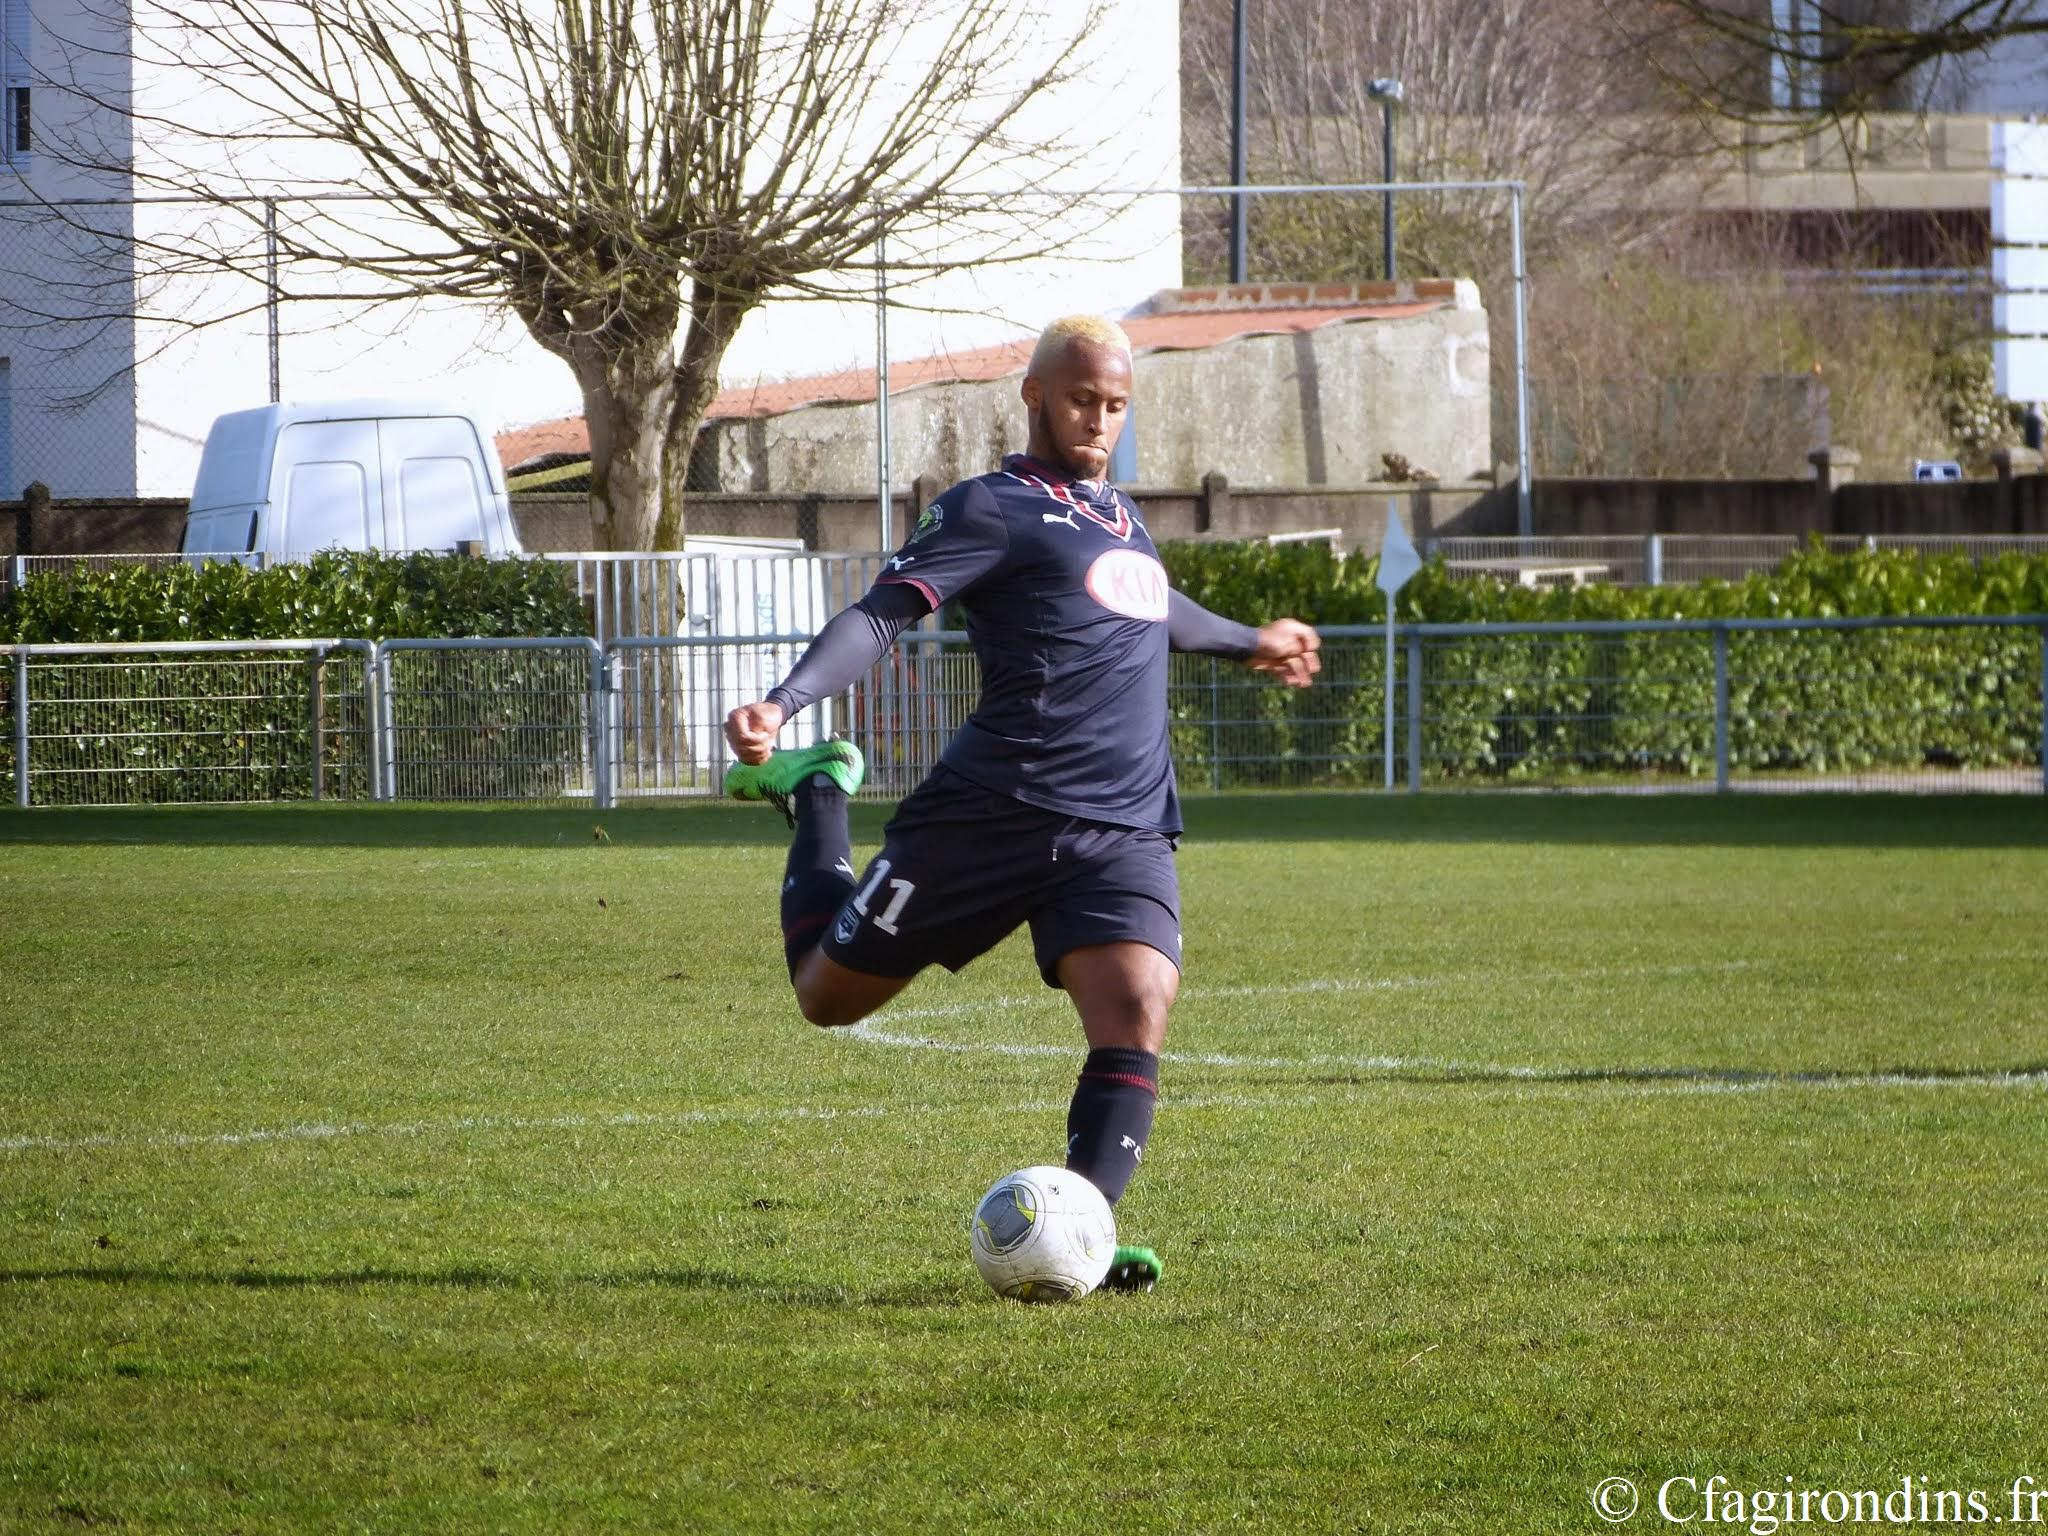 Cfa Girondins : [J19] Match nul 1-1 contre Cherbourg - Formation Girondins